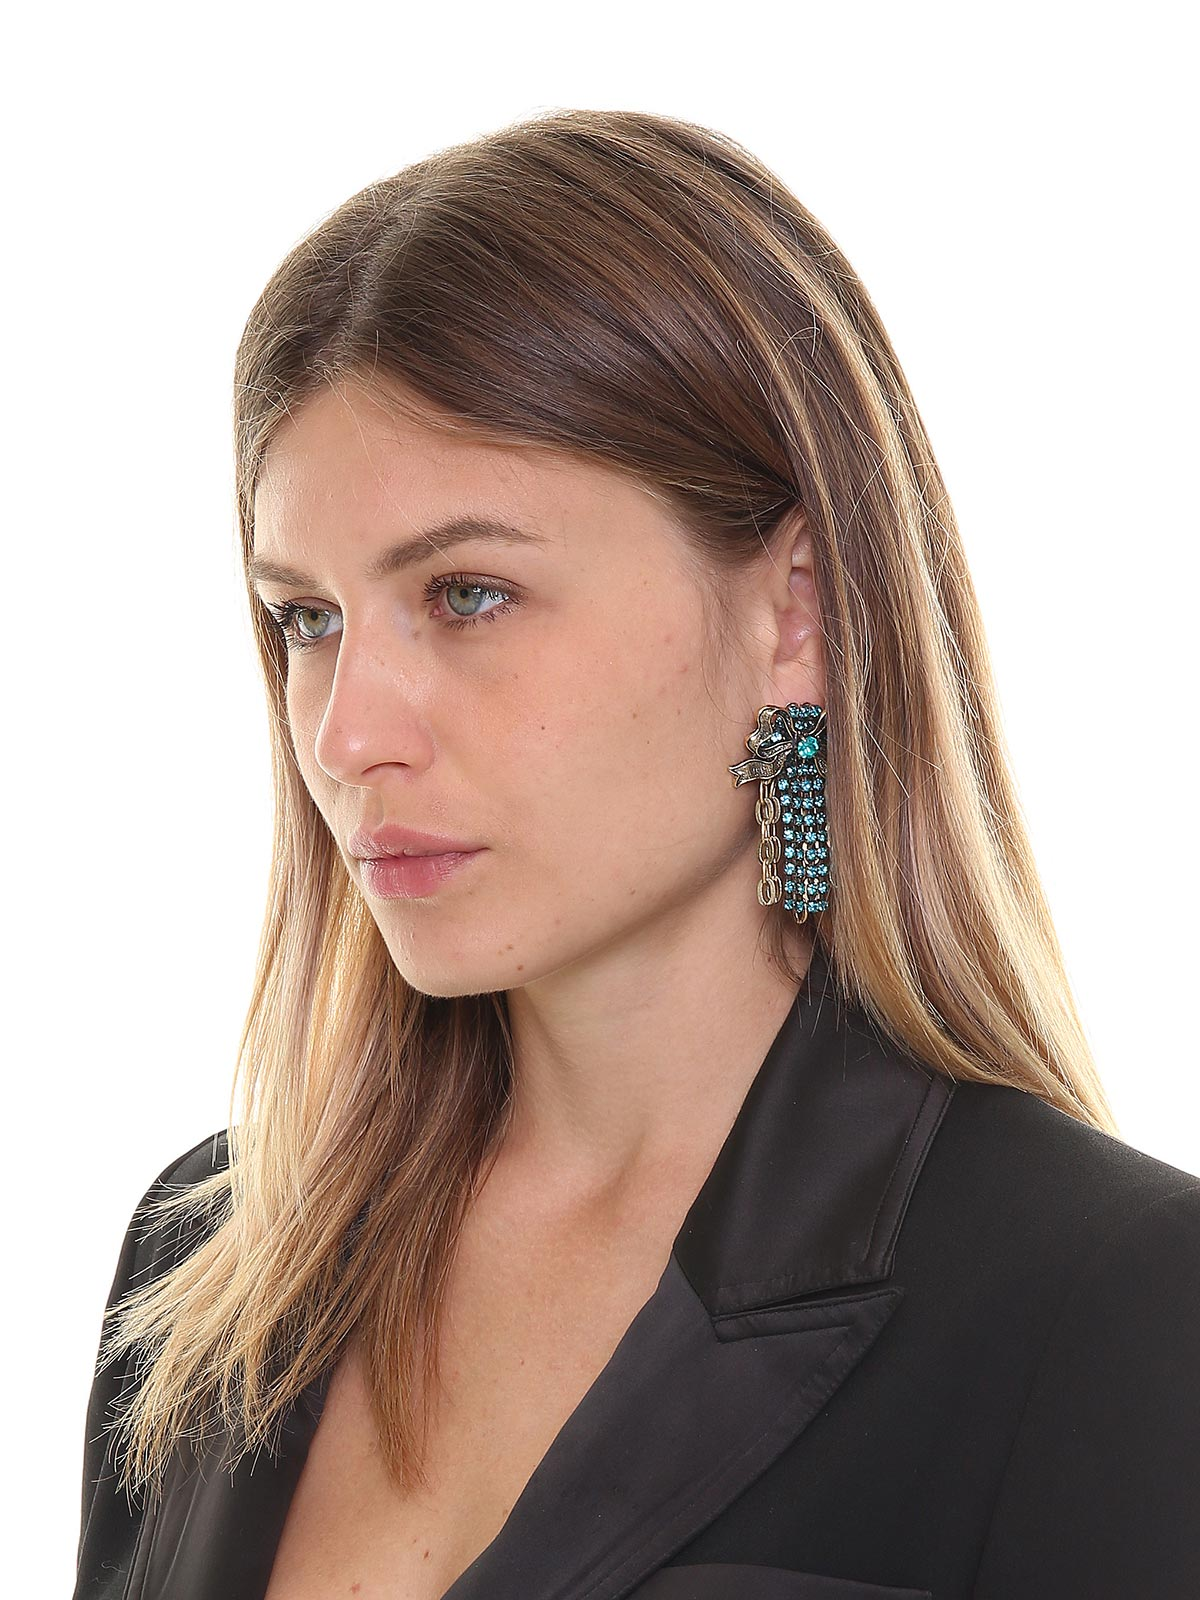 Floral brass earrings with crystals and chain cascade